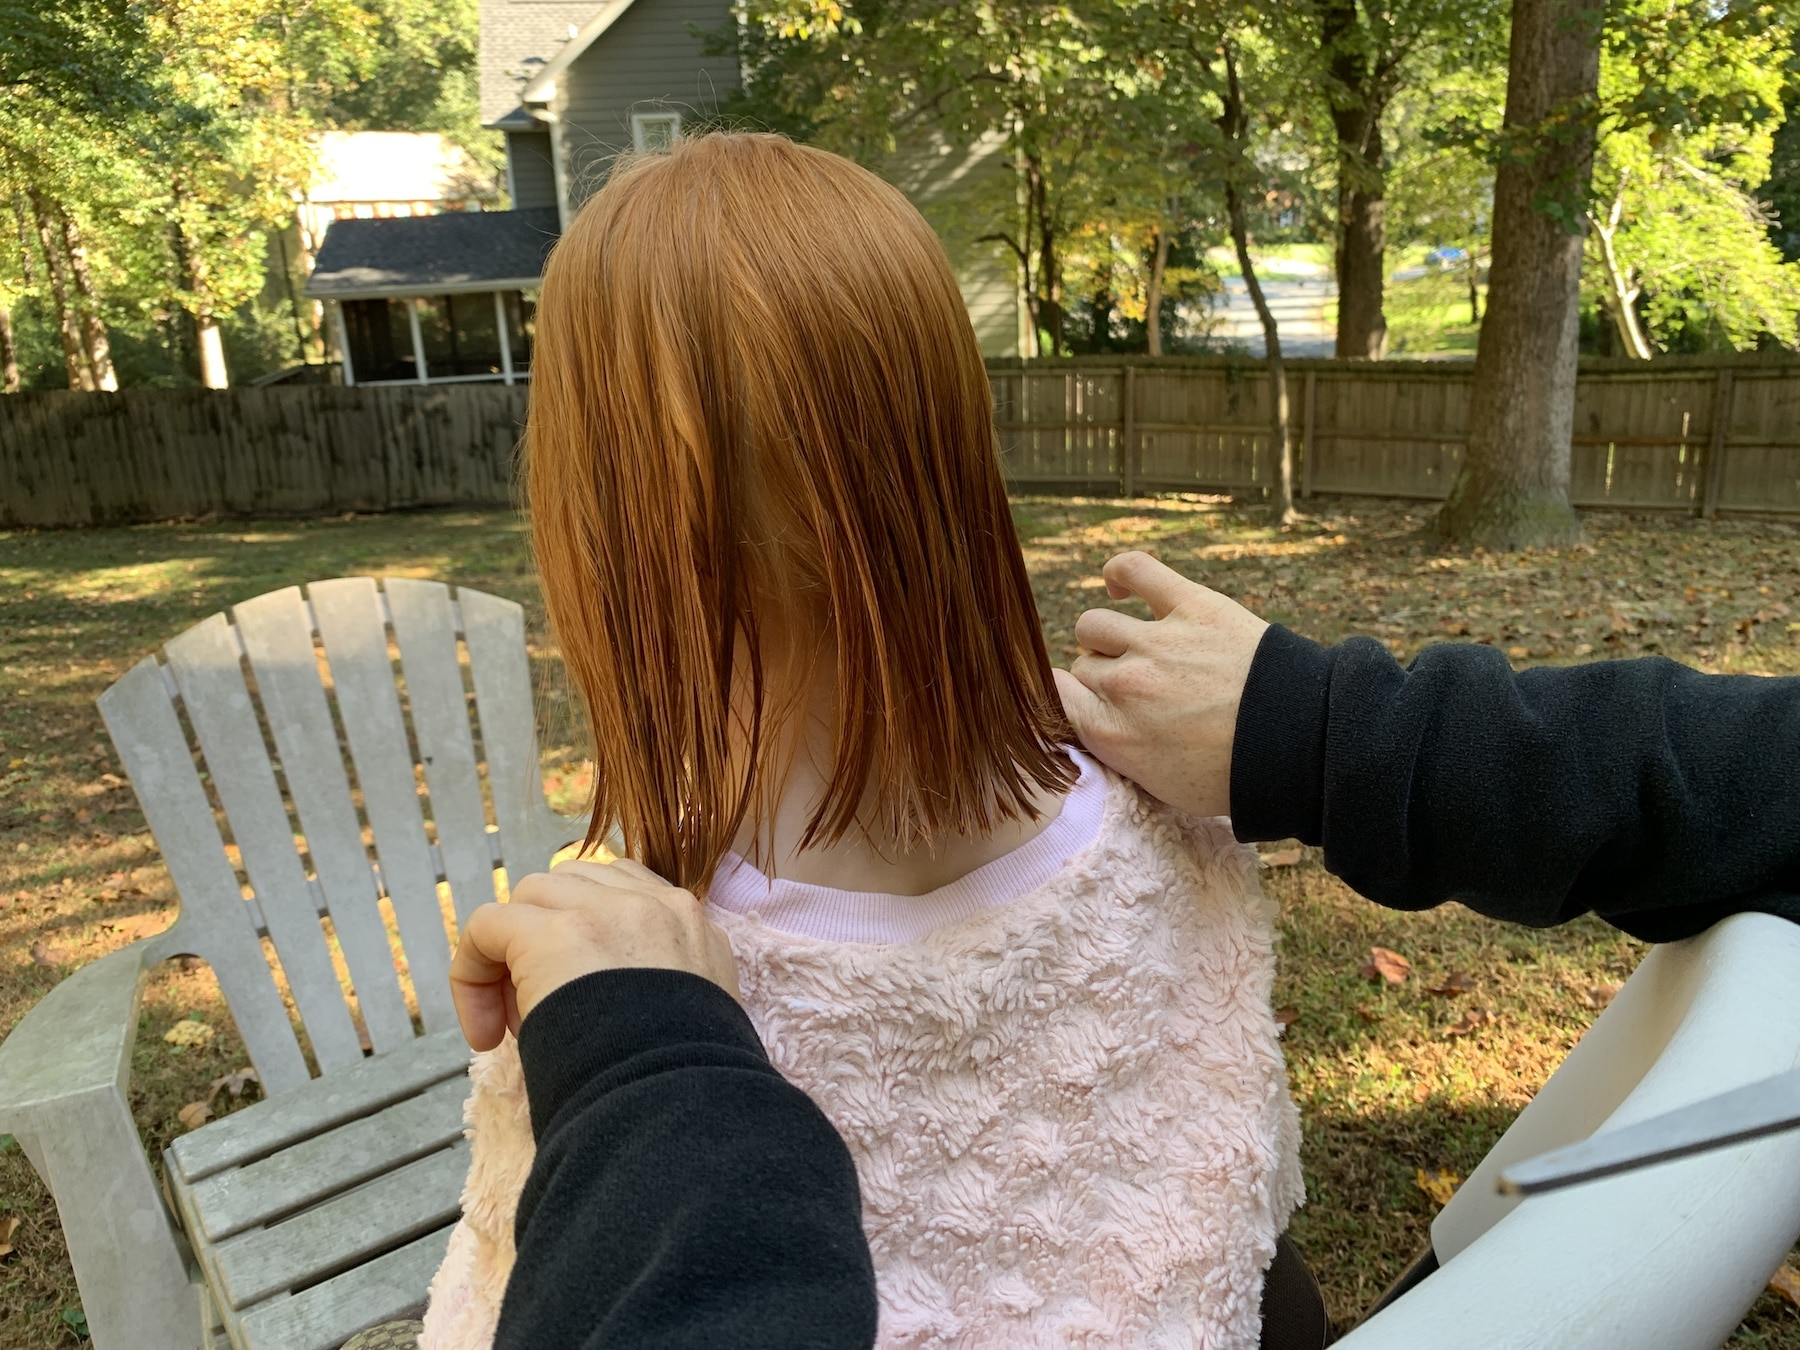 haircut at home with mom